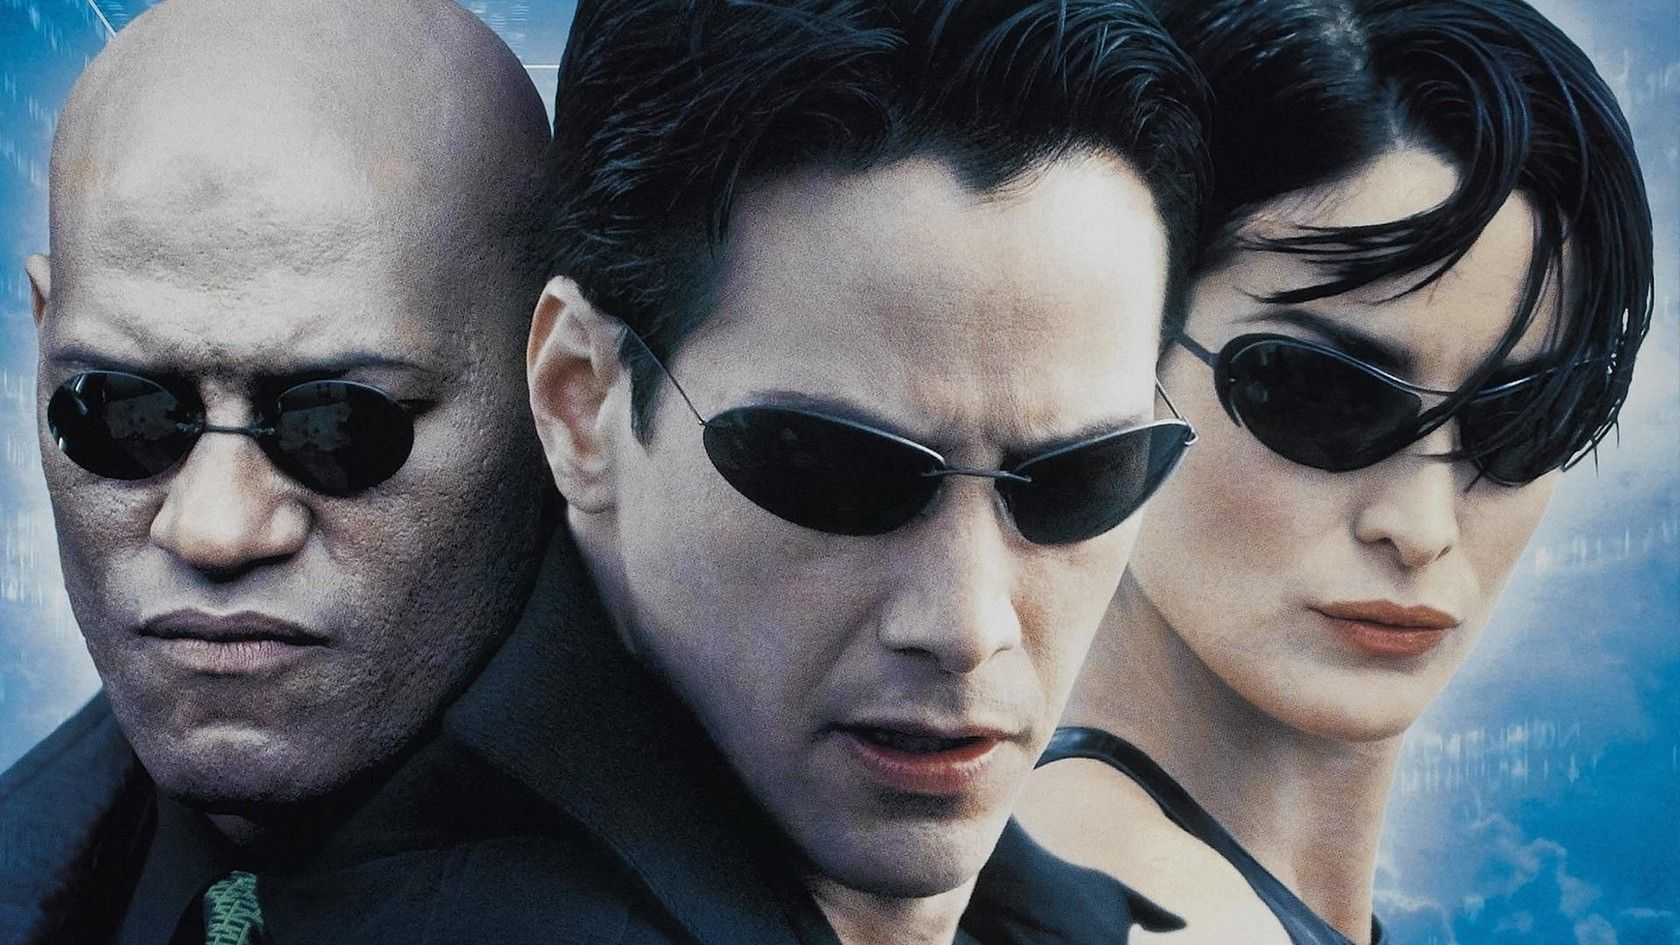 Roku link activation code to catch up on Matrix Trilogy until 'The Matrix 4' comes out